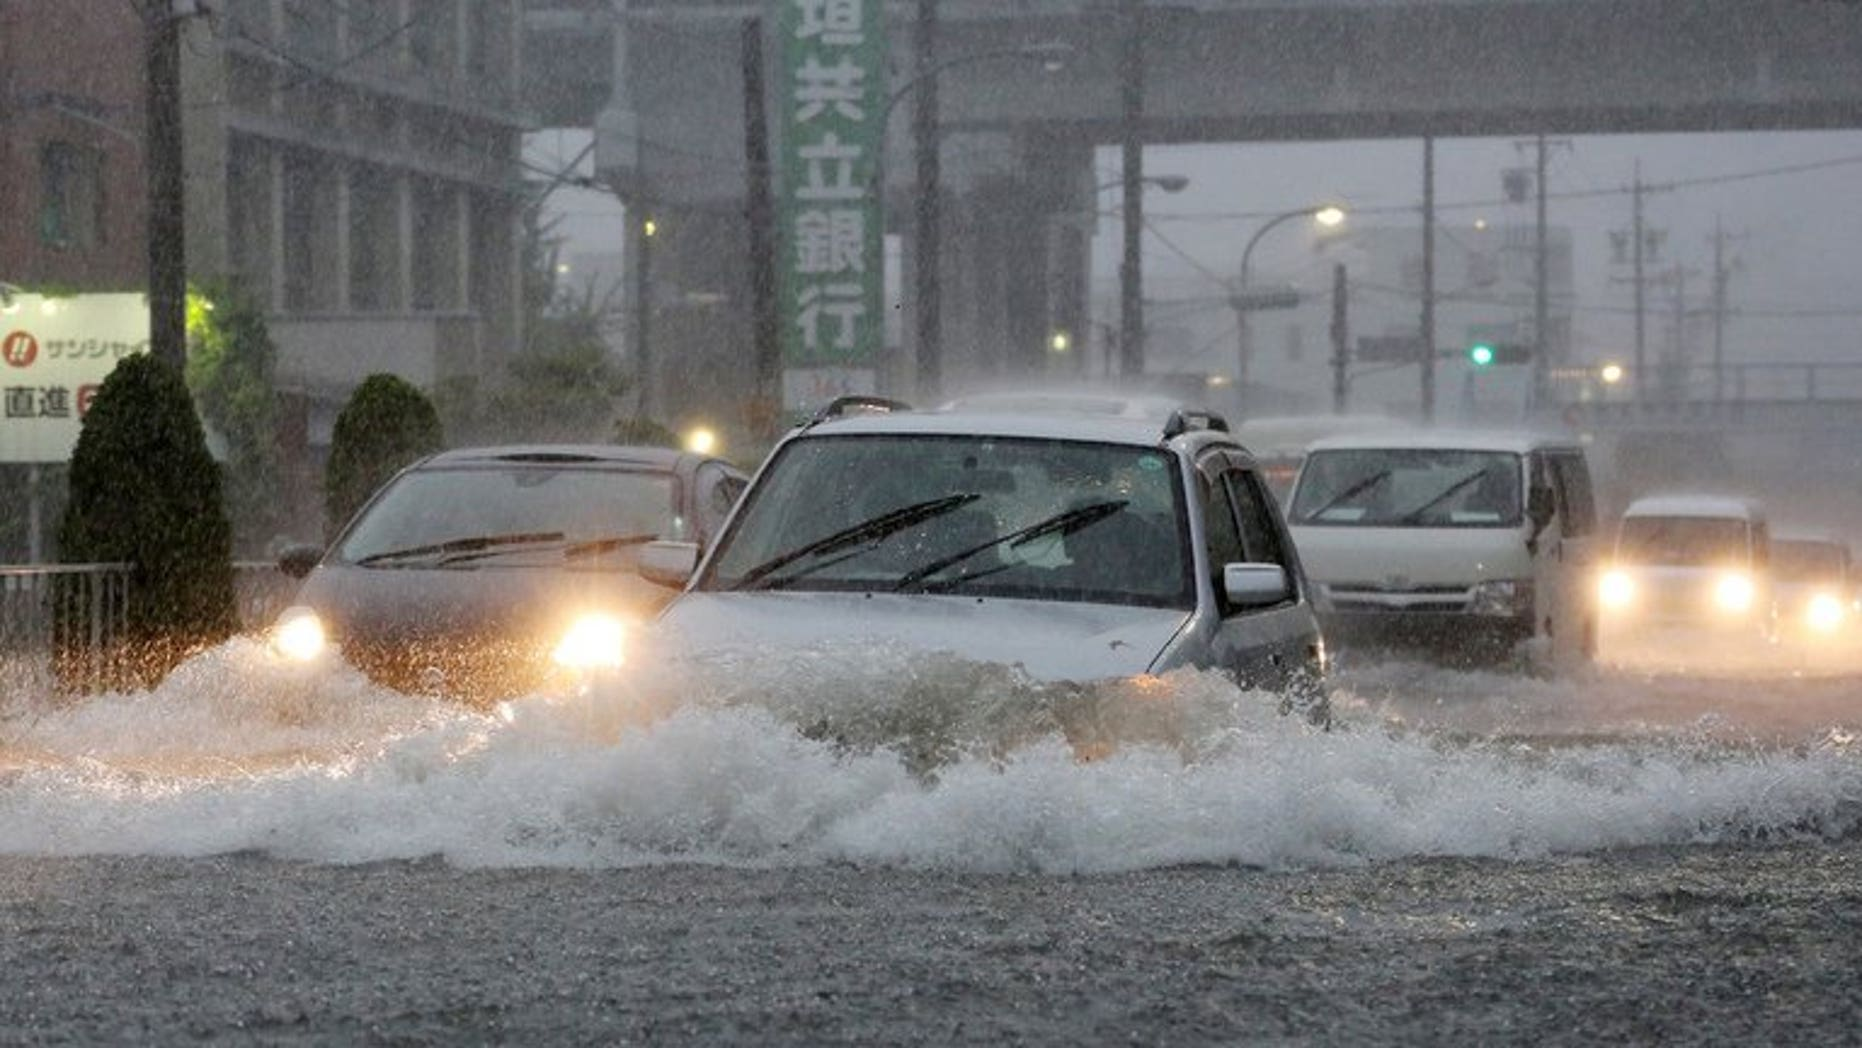 Cars manouever through flood waters on a road in Nagoya, Aichi prefecture on September 4, 2013.